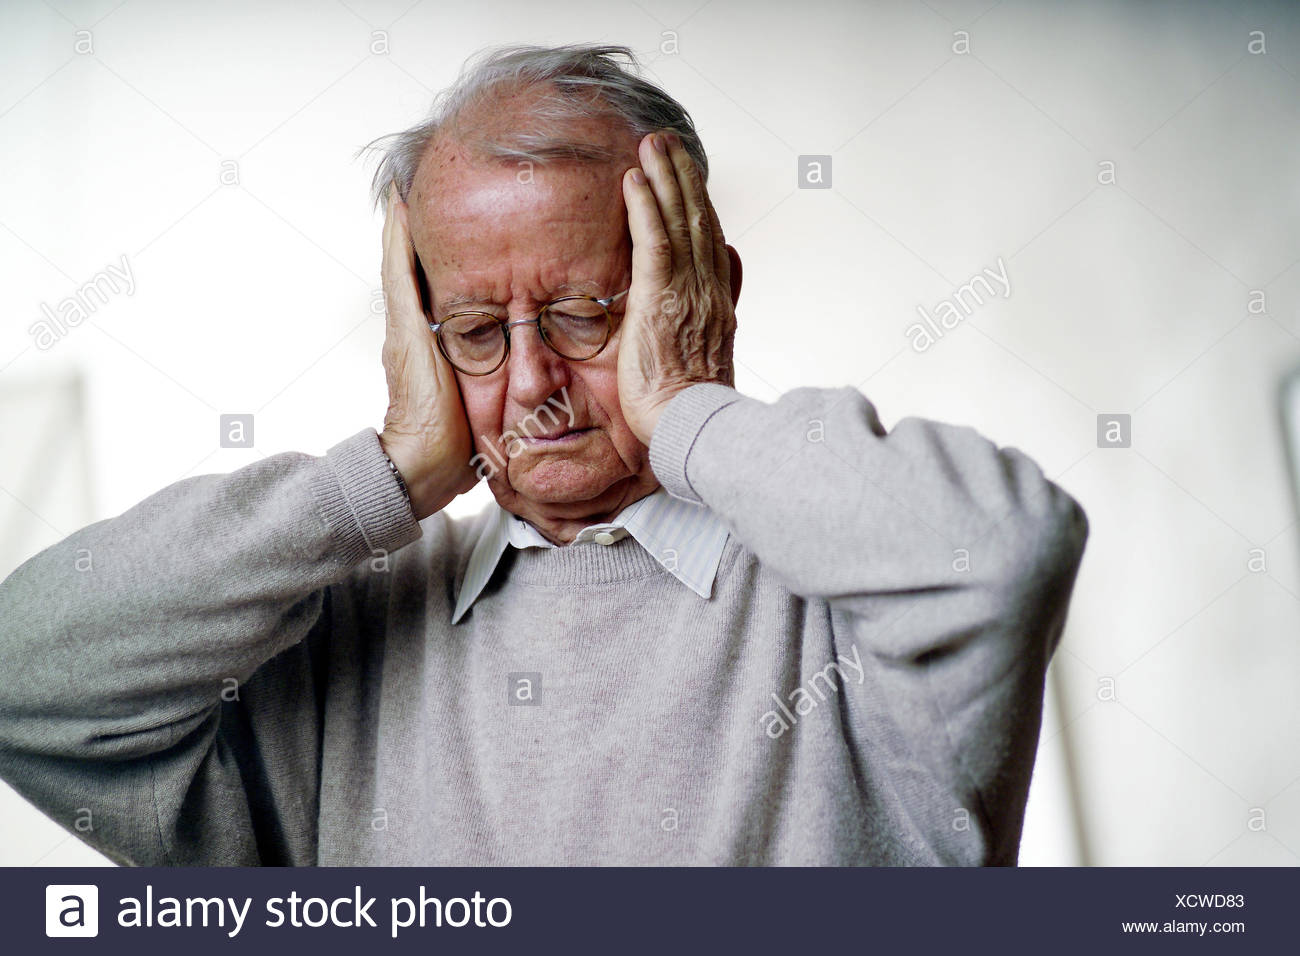 Boss, seriously, gesture, cephalalgias, half portrait, man, pensioner, man's portrait, unhappily, obliviously, forgetfulness, pain, pains, earache, disease, ill, noise, volume, Ear-deafeningly, loudly, unpleasantly, neighborhood fight - Stock Image